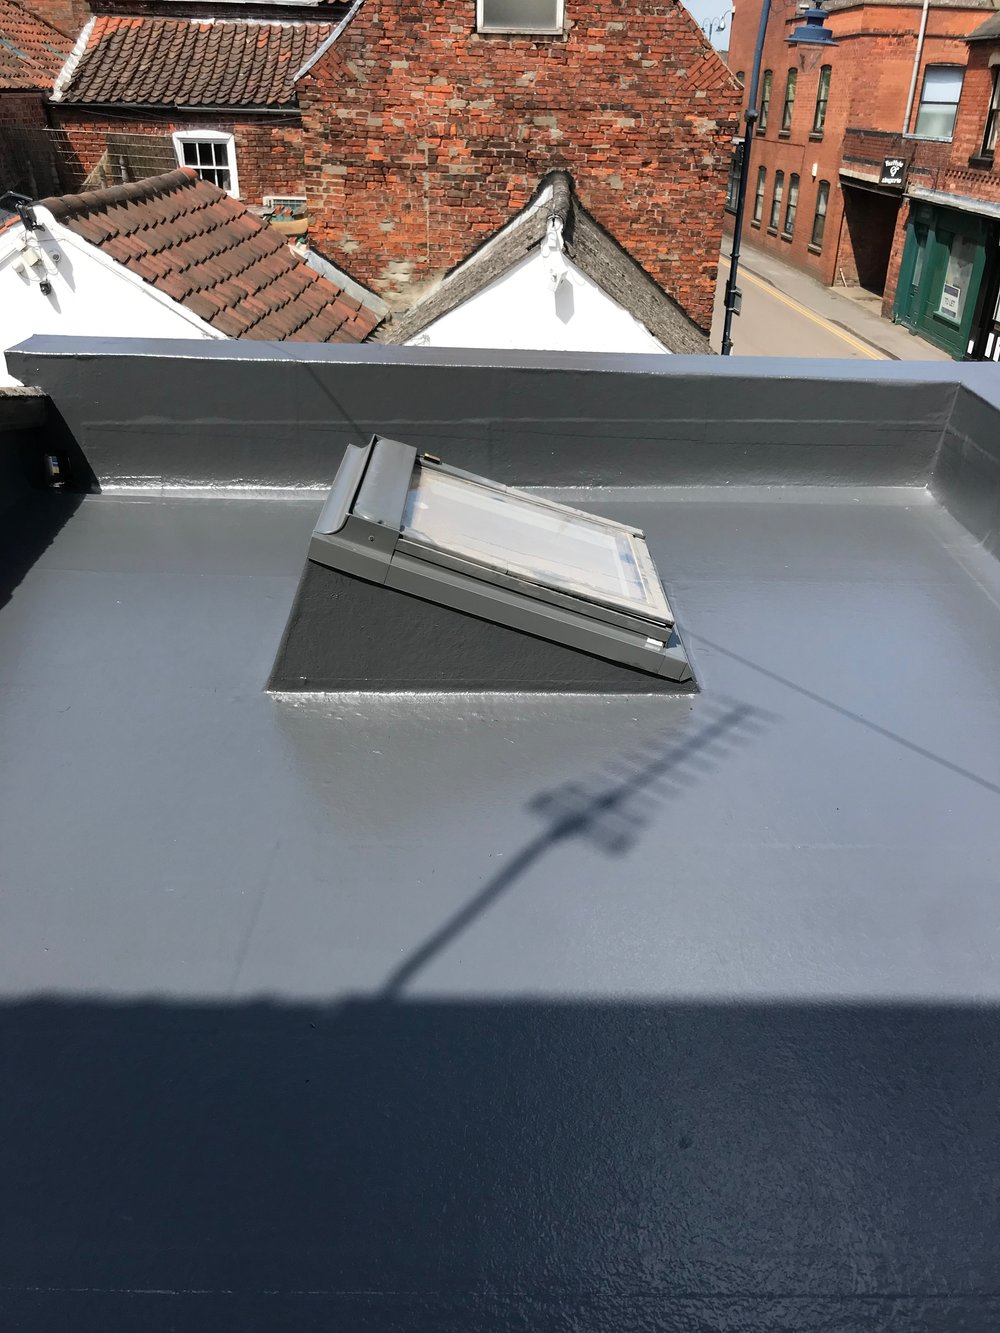 Only the best materials - Our fibreglass laminate system is created from 600gsm Fibreglass Matting, and Lloyd's approved Class2 Fire Retardant Resin which bonds perfectly to the edge trims and flashings. We then cover the Fibreglass Laminate with our high performance Flowcoat in our signature dark grey. Where every other roofing system has historically failed, ours excels.